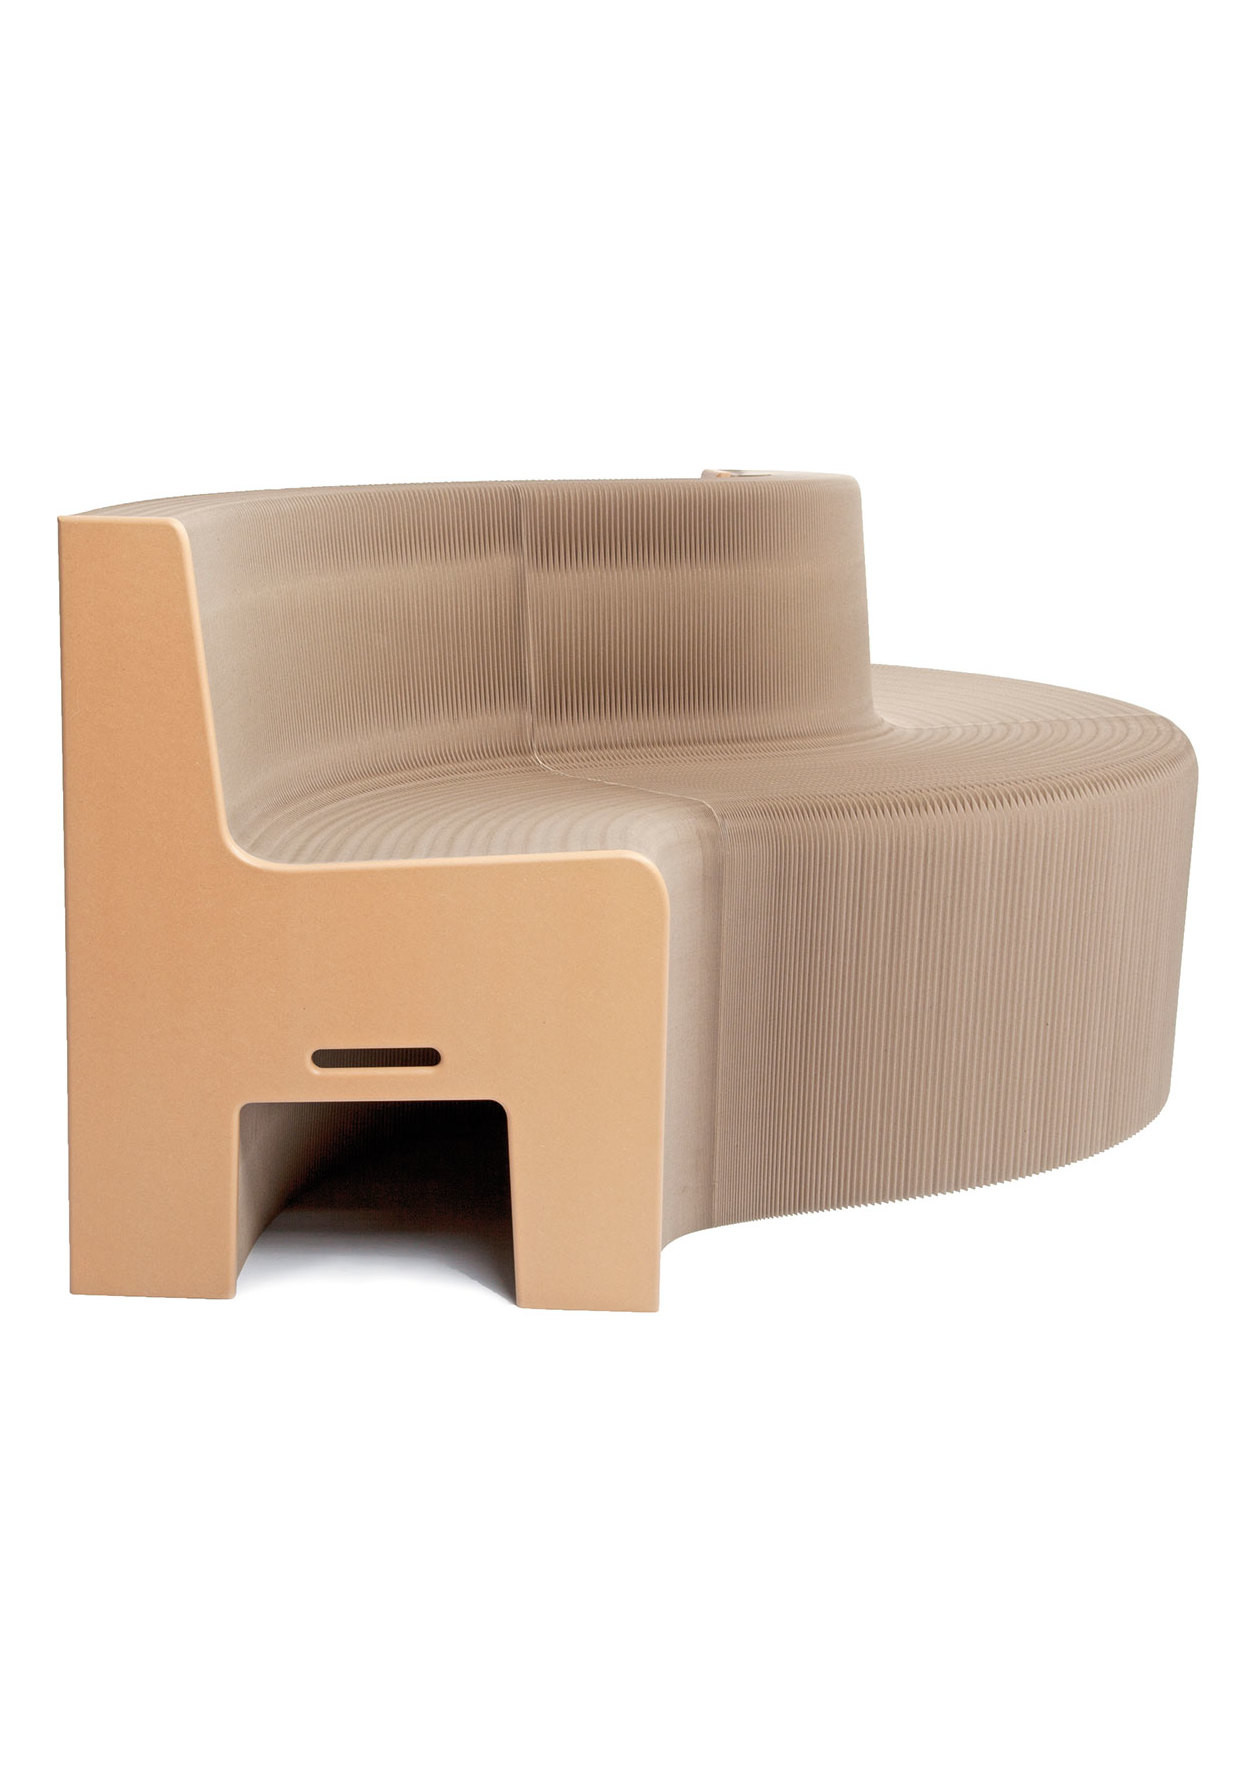 Live In A Small Space This Unique Expanding Couch Is